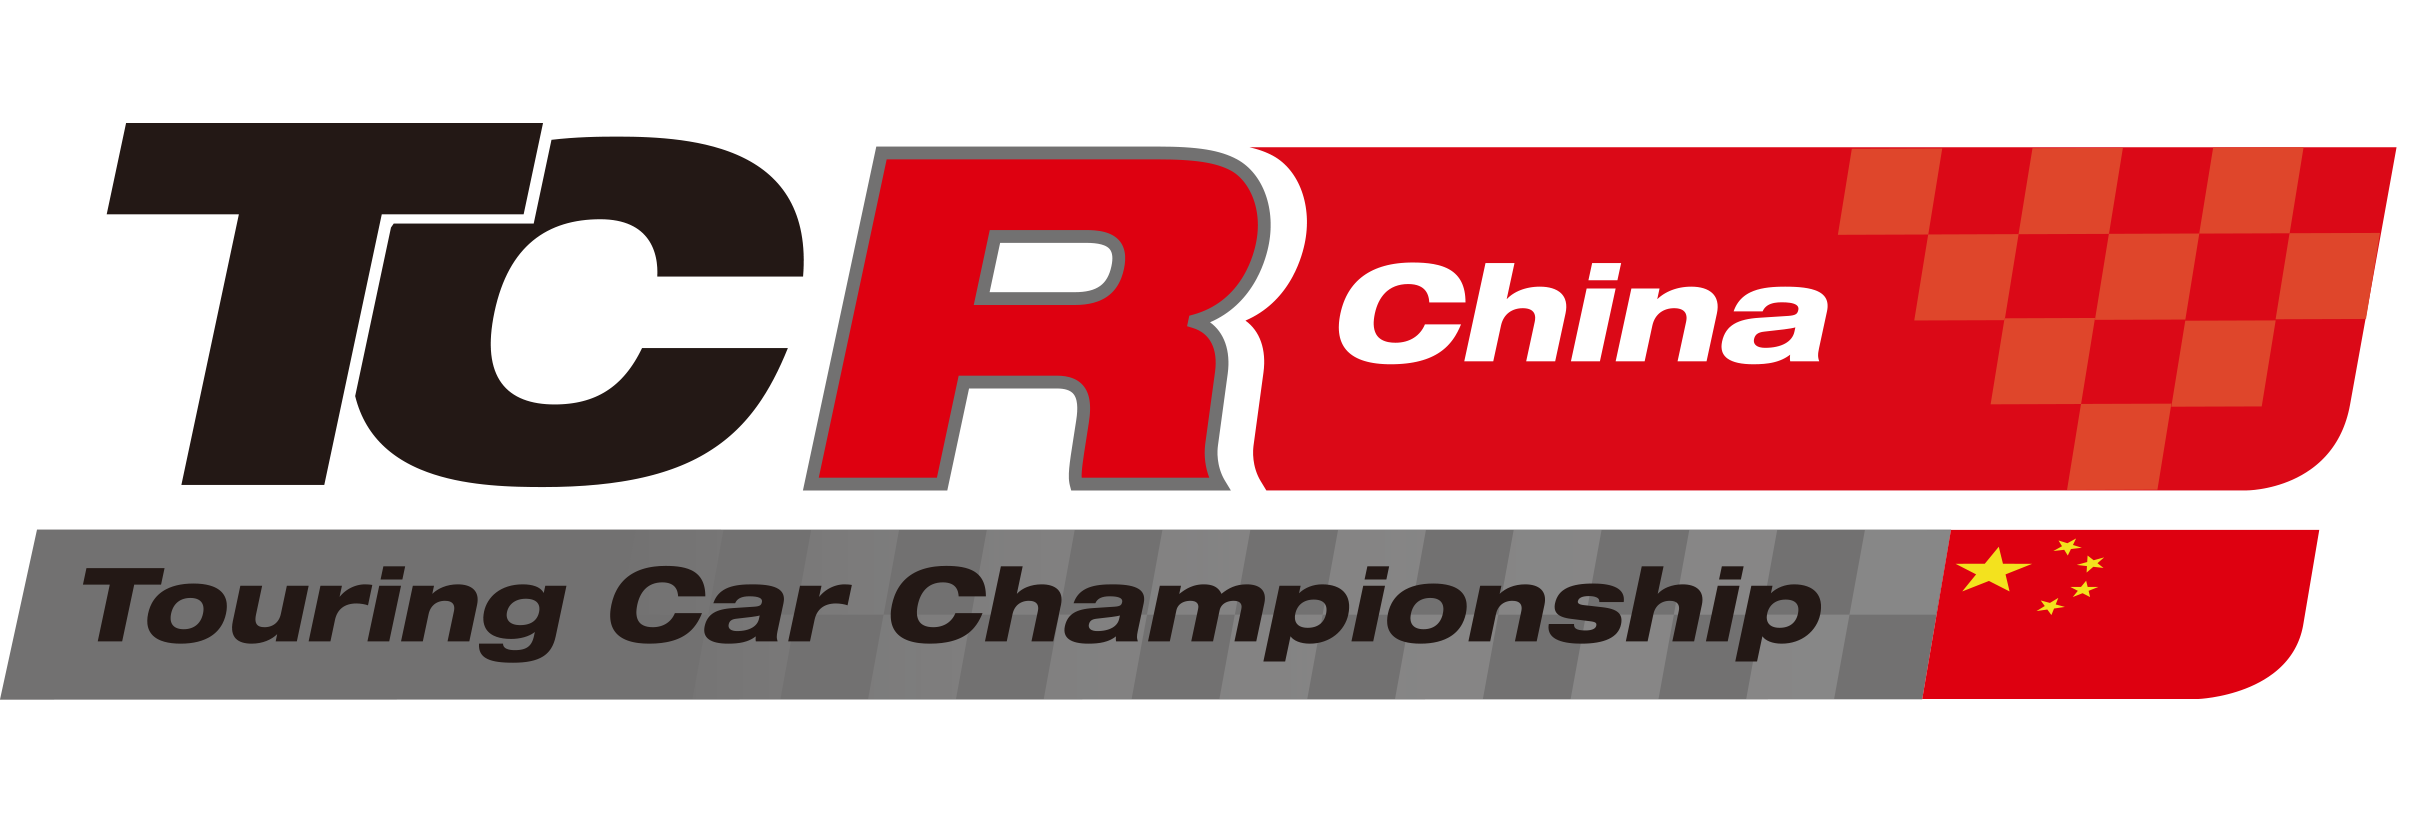 TCR_China(黑色).png